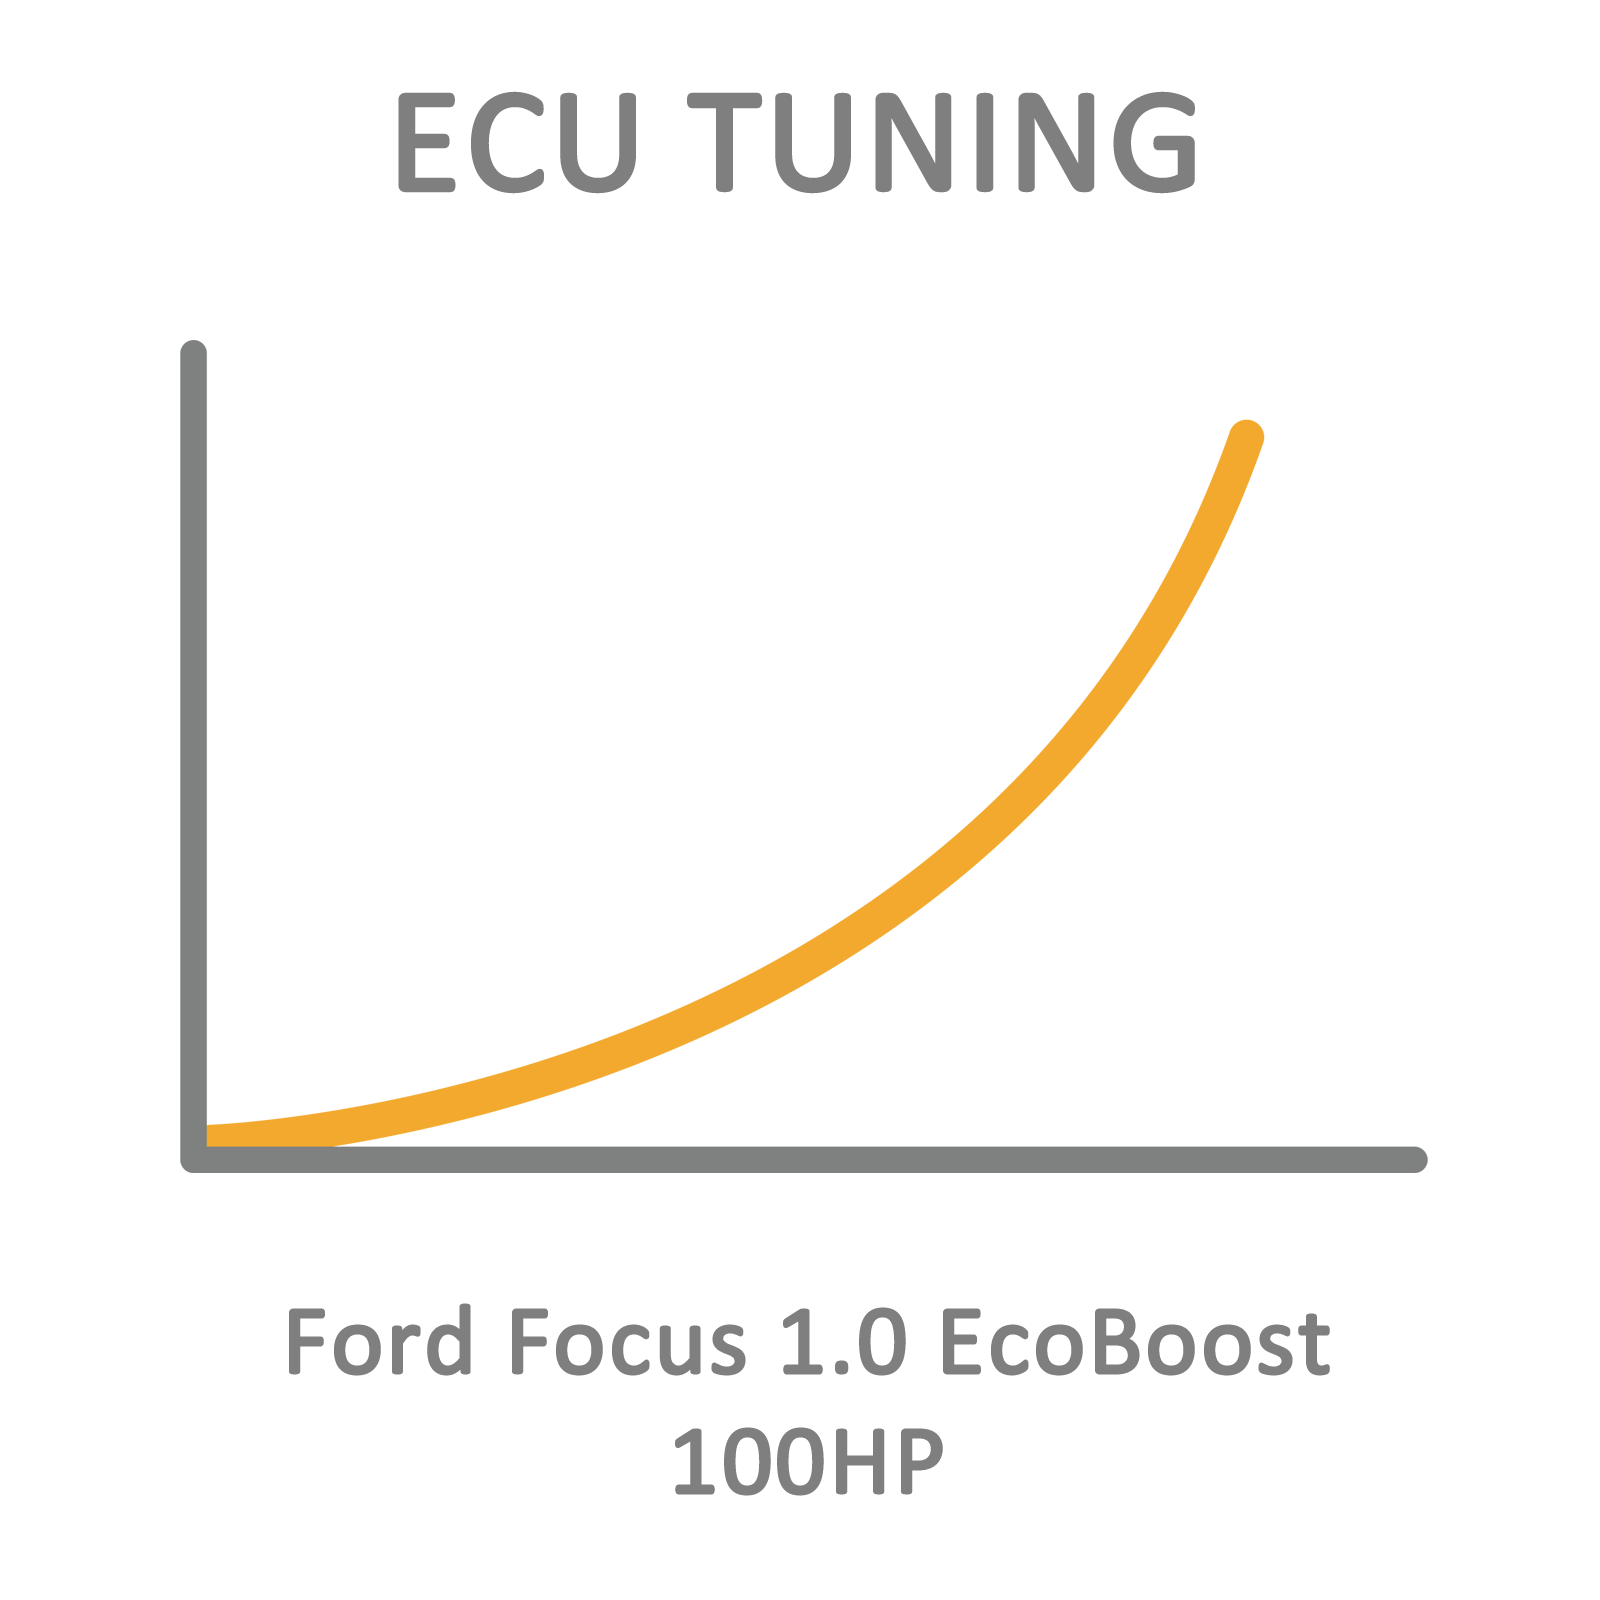 Ford Focus 1.0 EcoBoost 100HP ECU Tuning Remapping Programming